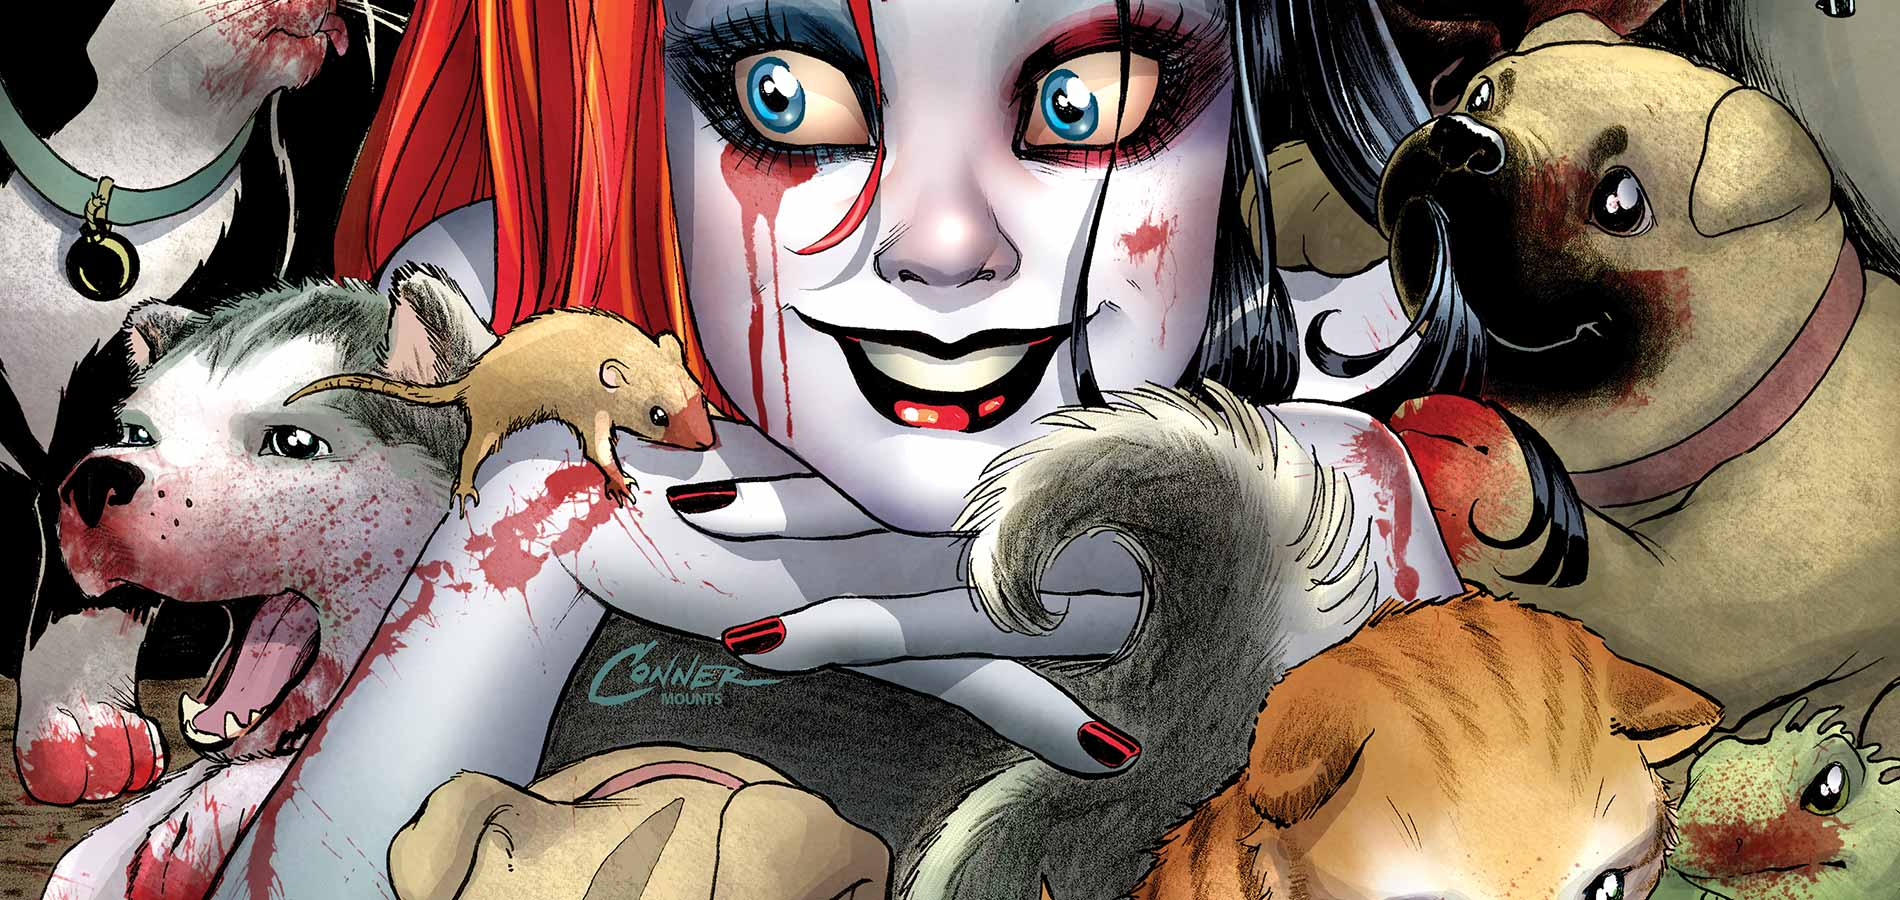 1900x900 Comics Harley Quinn wallpapers (Desktop, Phone, Tablet) - Awesome ...